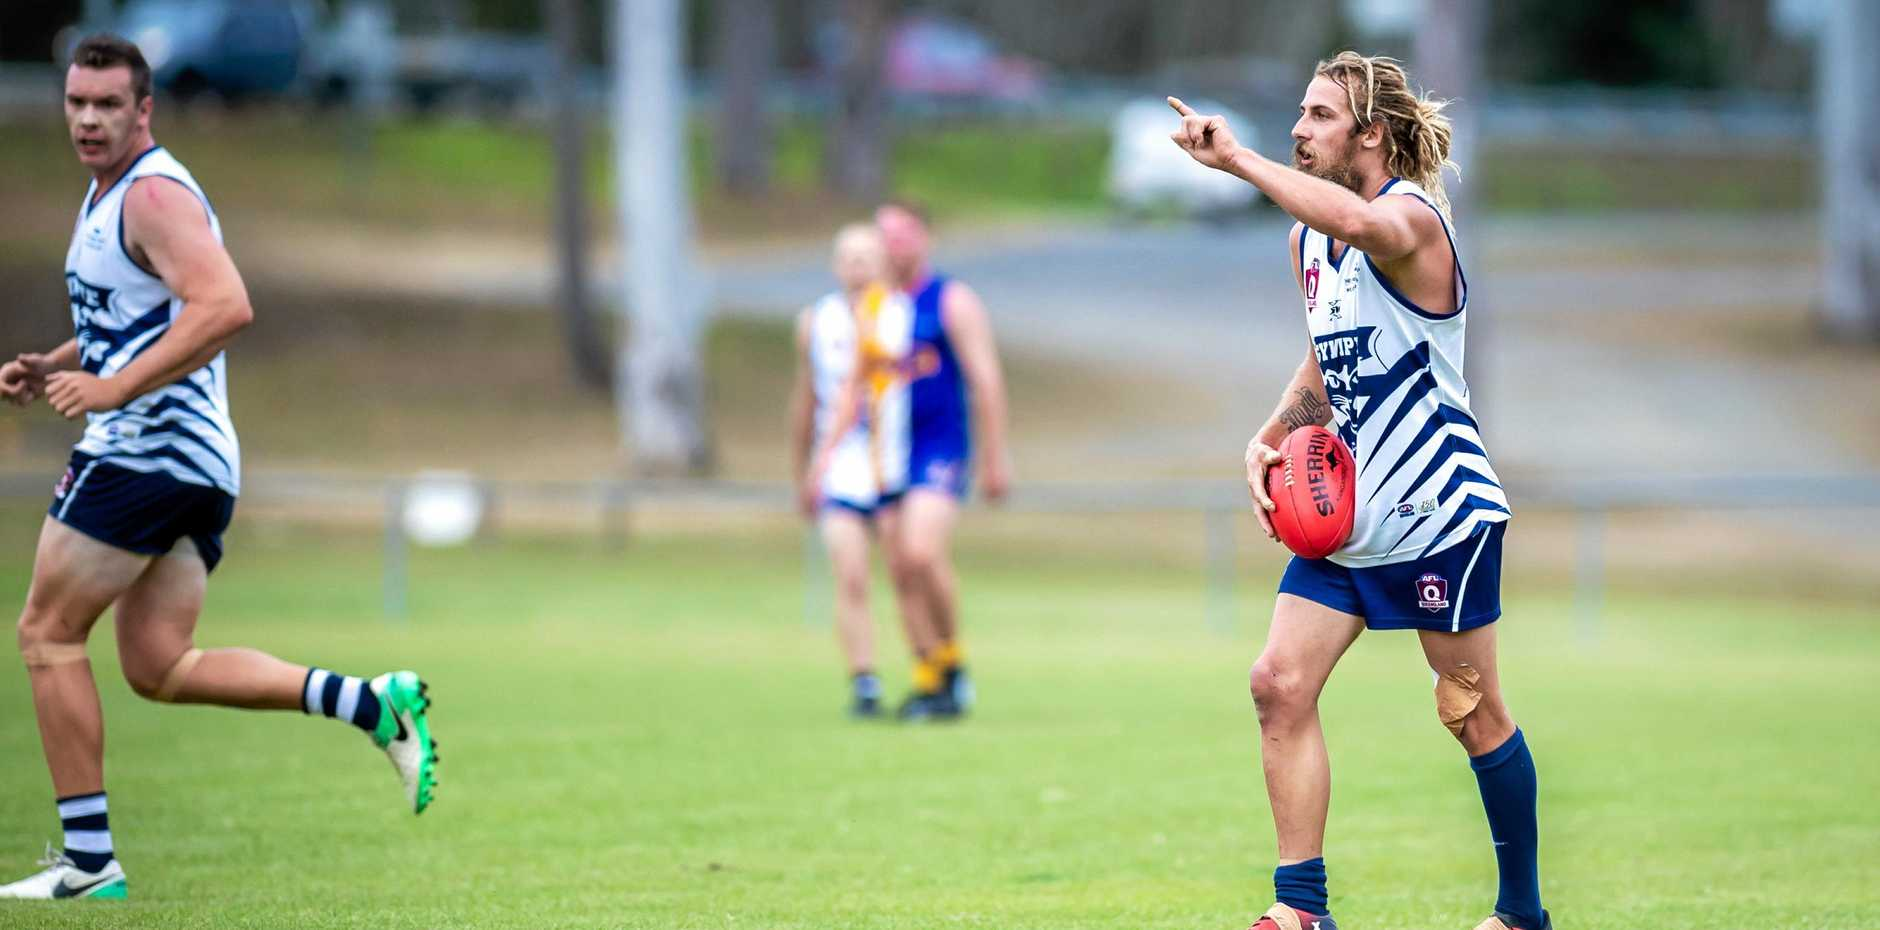 RARING TO GO: Gympie Cats captain Lanze Magin is the key factor in his side's premiership chances this season.